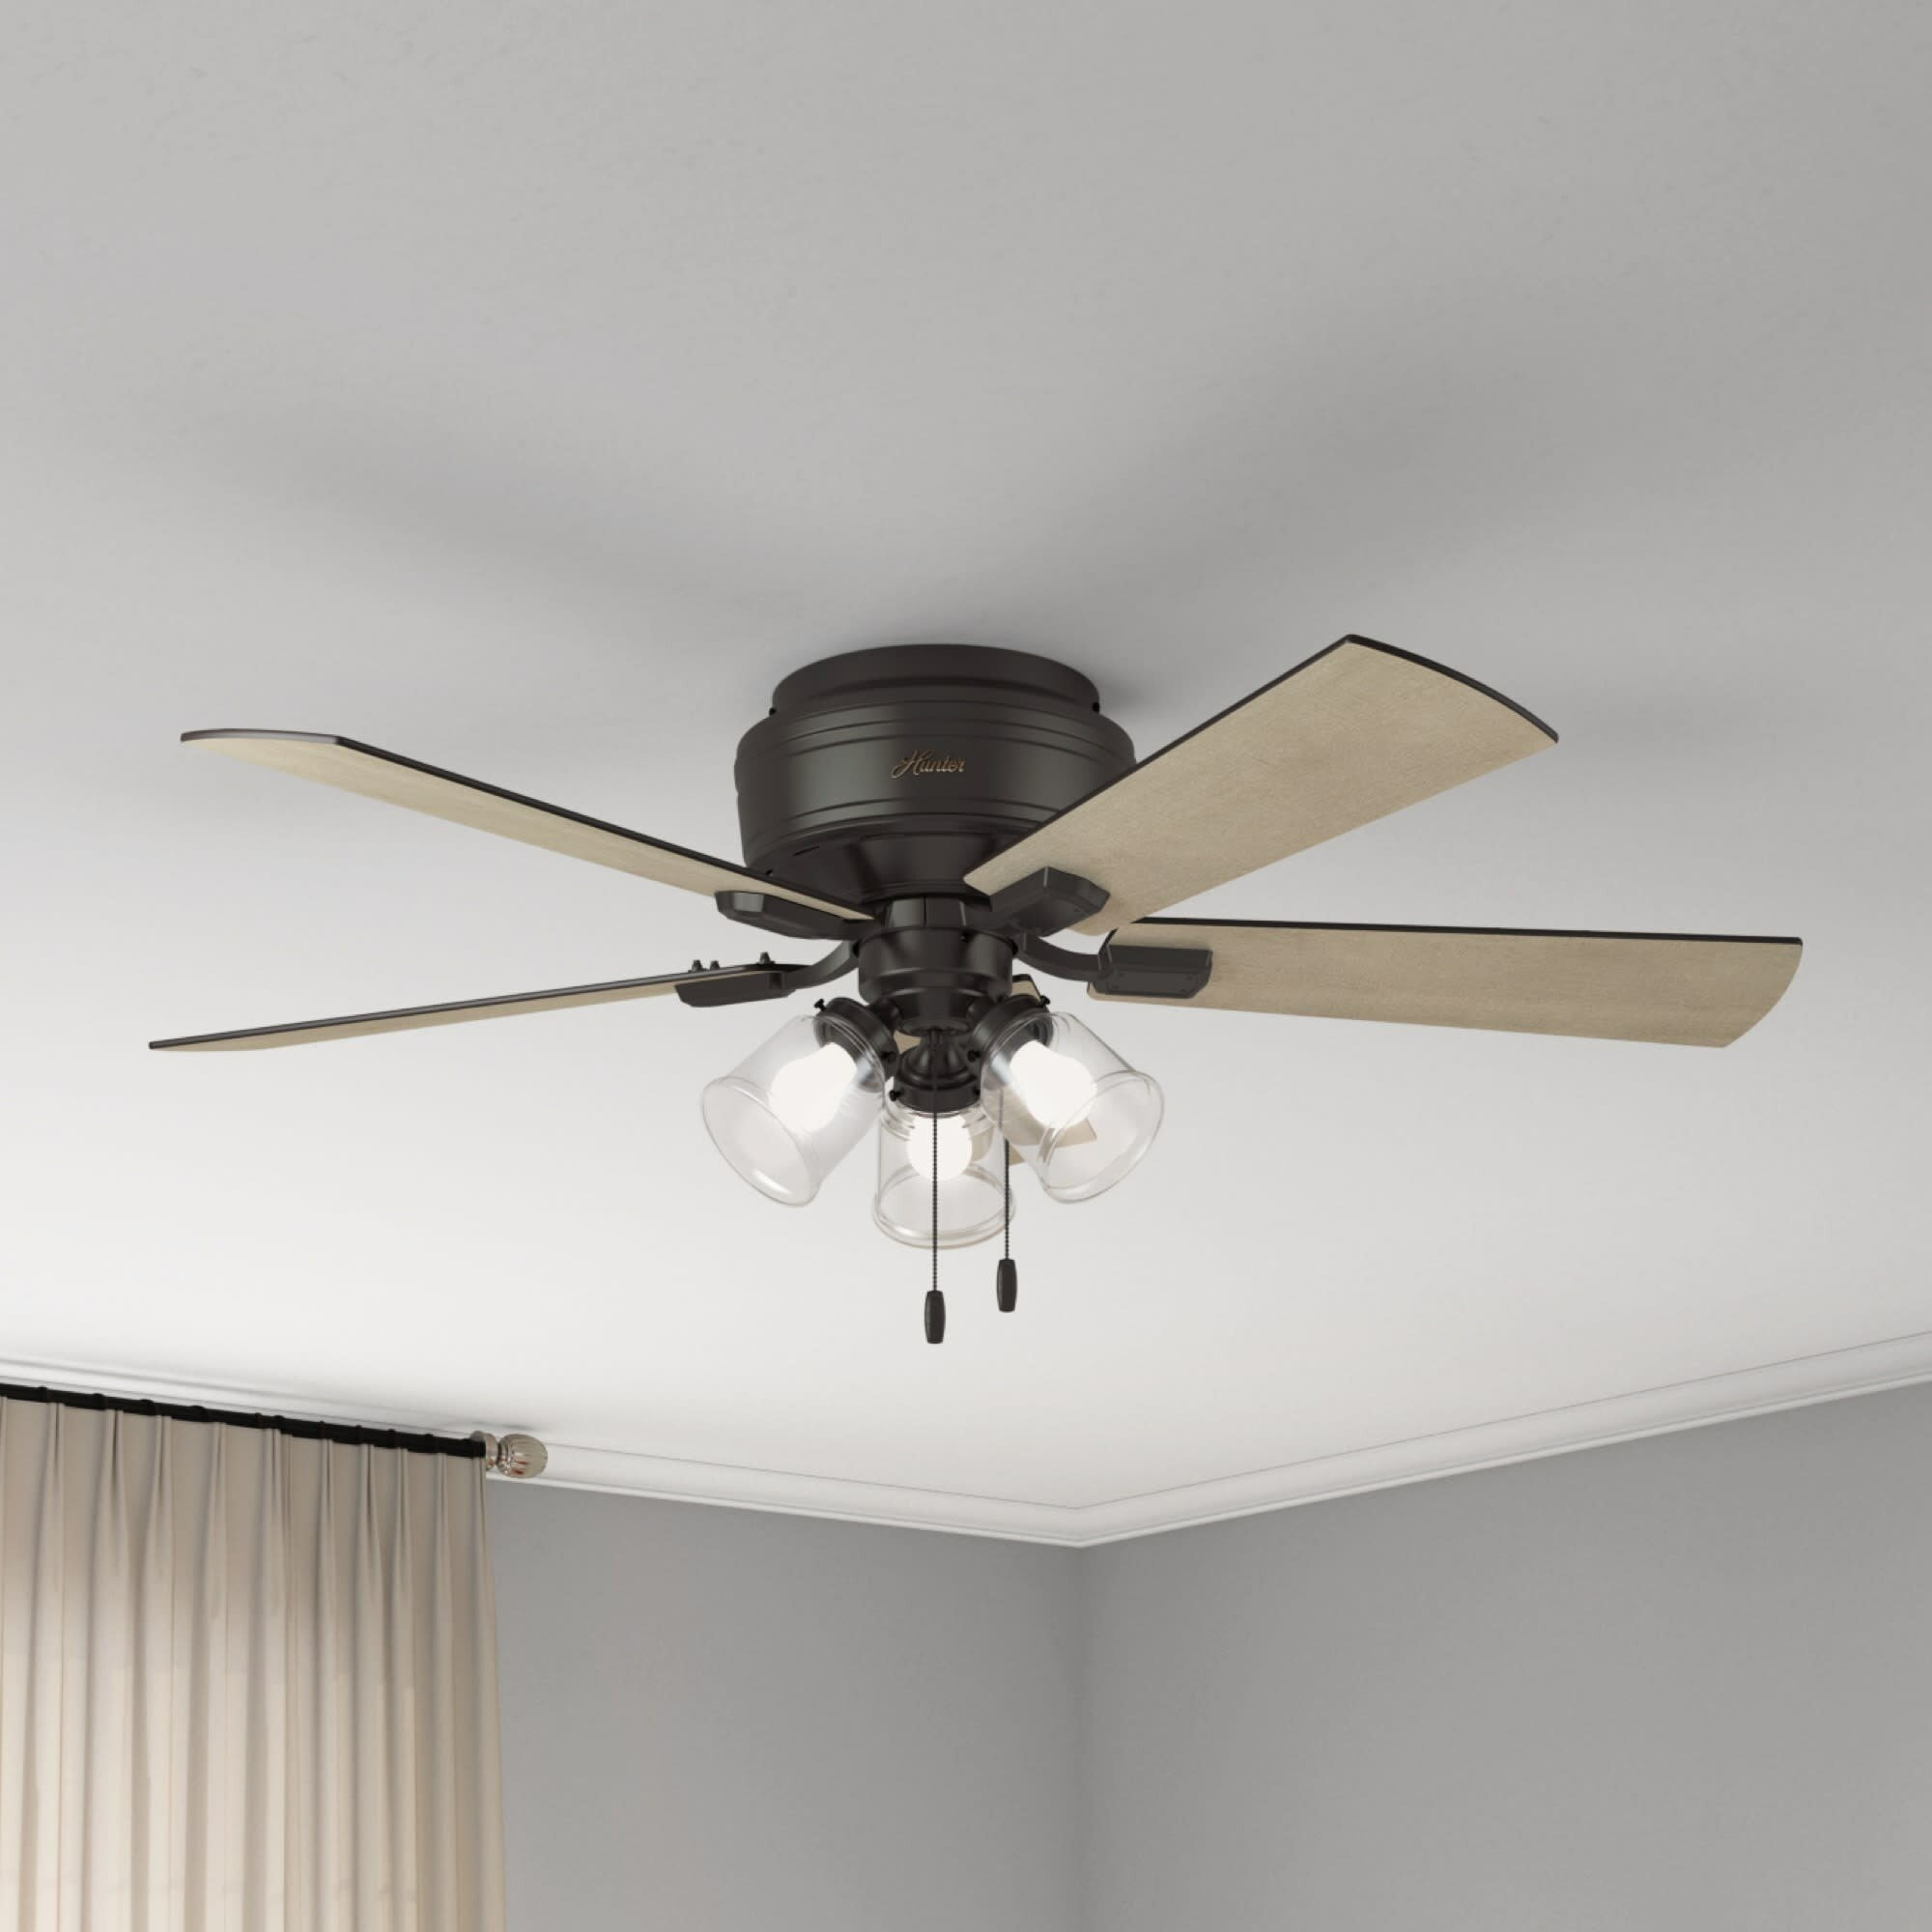 Hunter Fan 52 Crestfield 5 Blade Flush Mount Ceiling Fan With Pull Chain And Light Kit Included Reviews Wayfair Ca